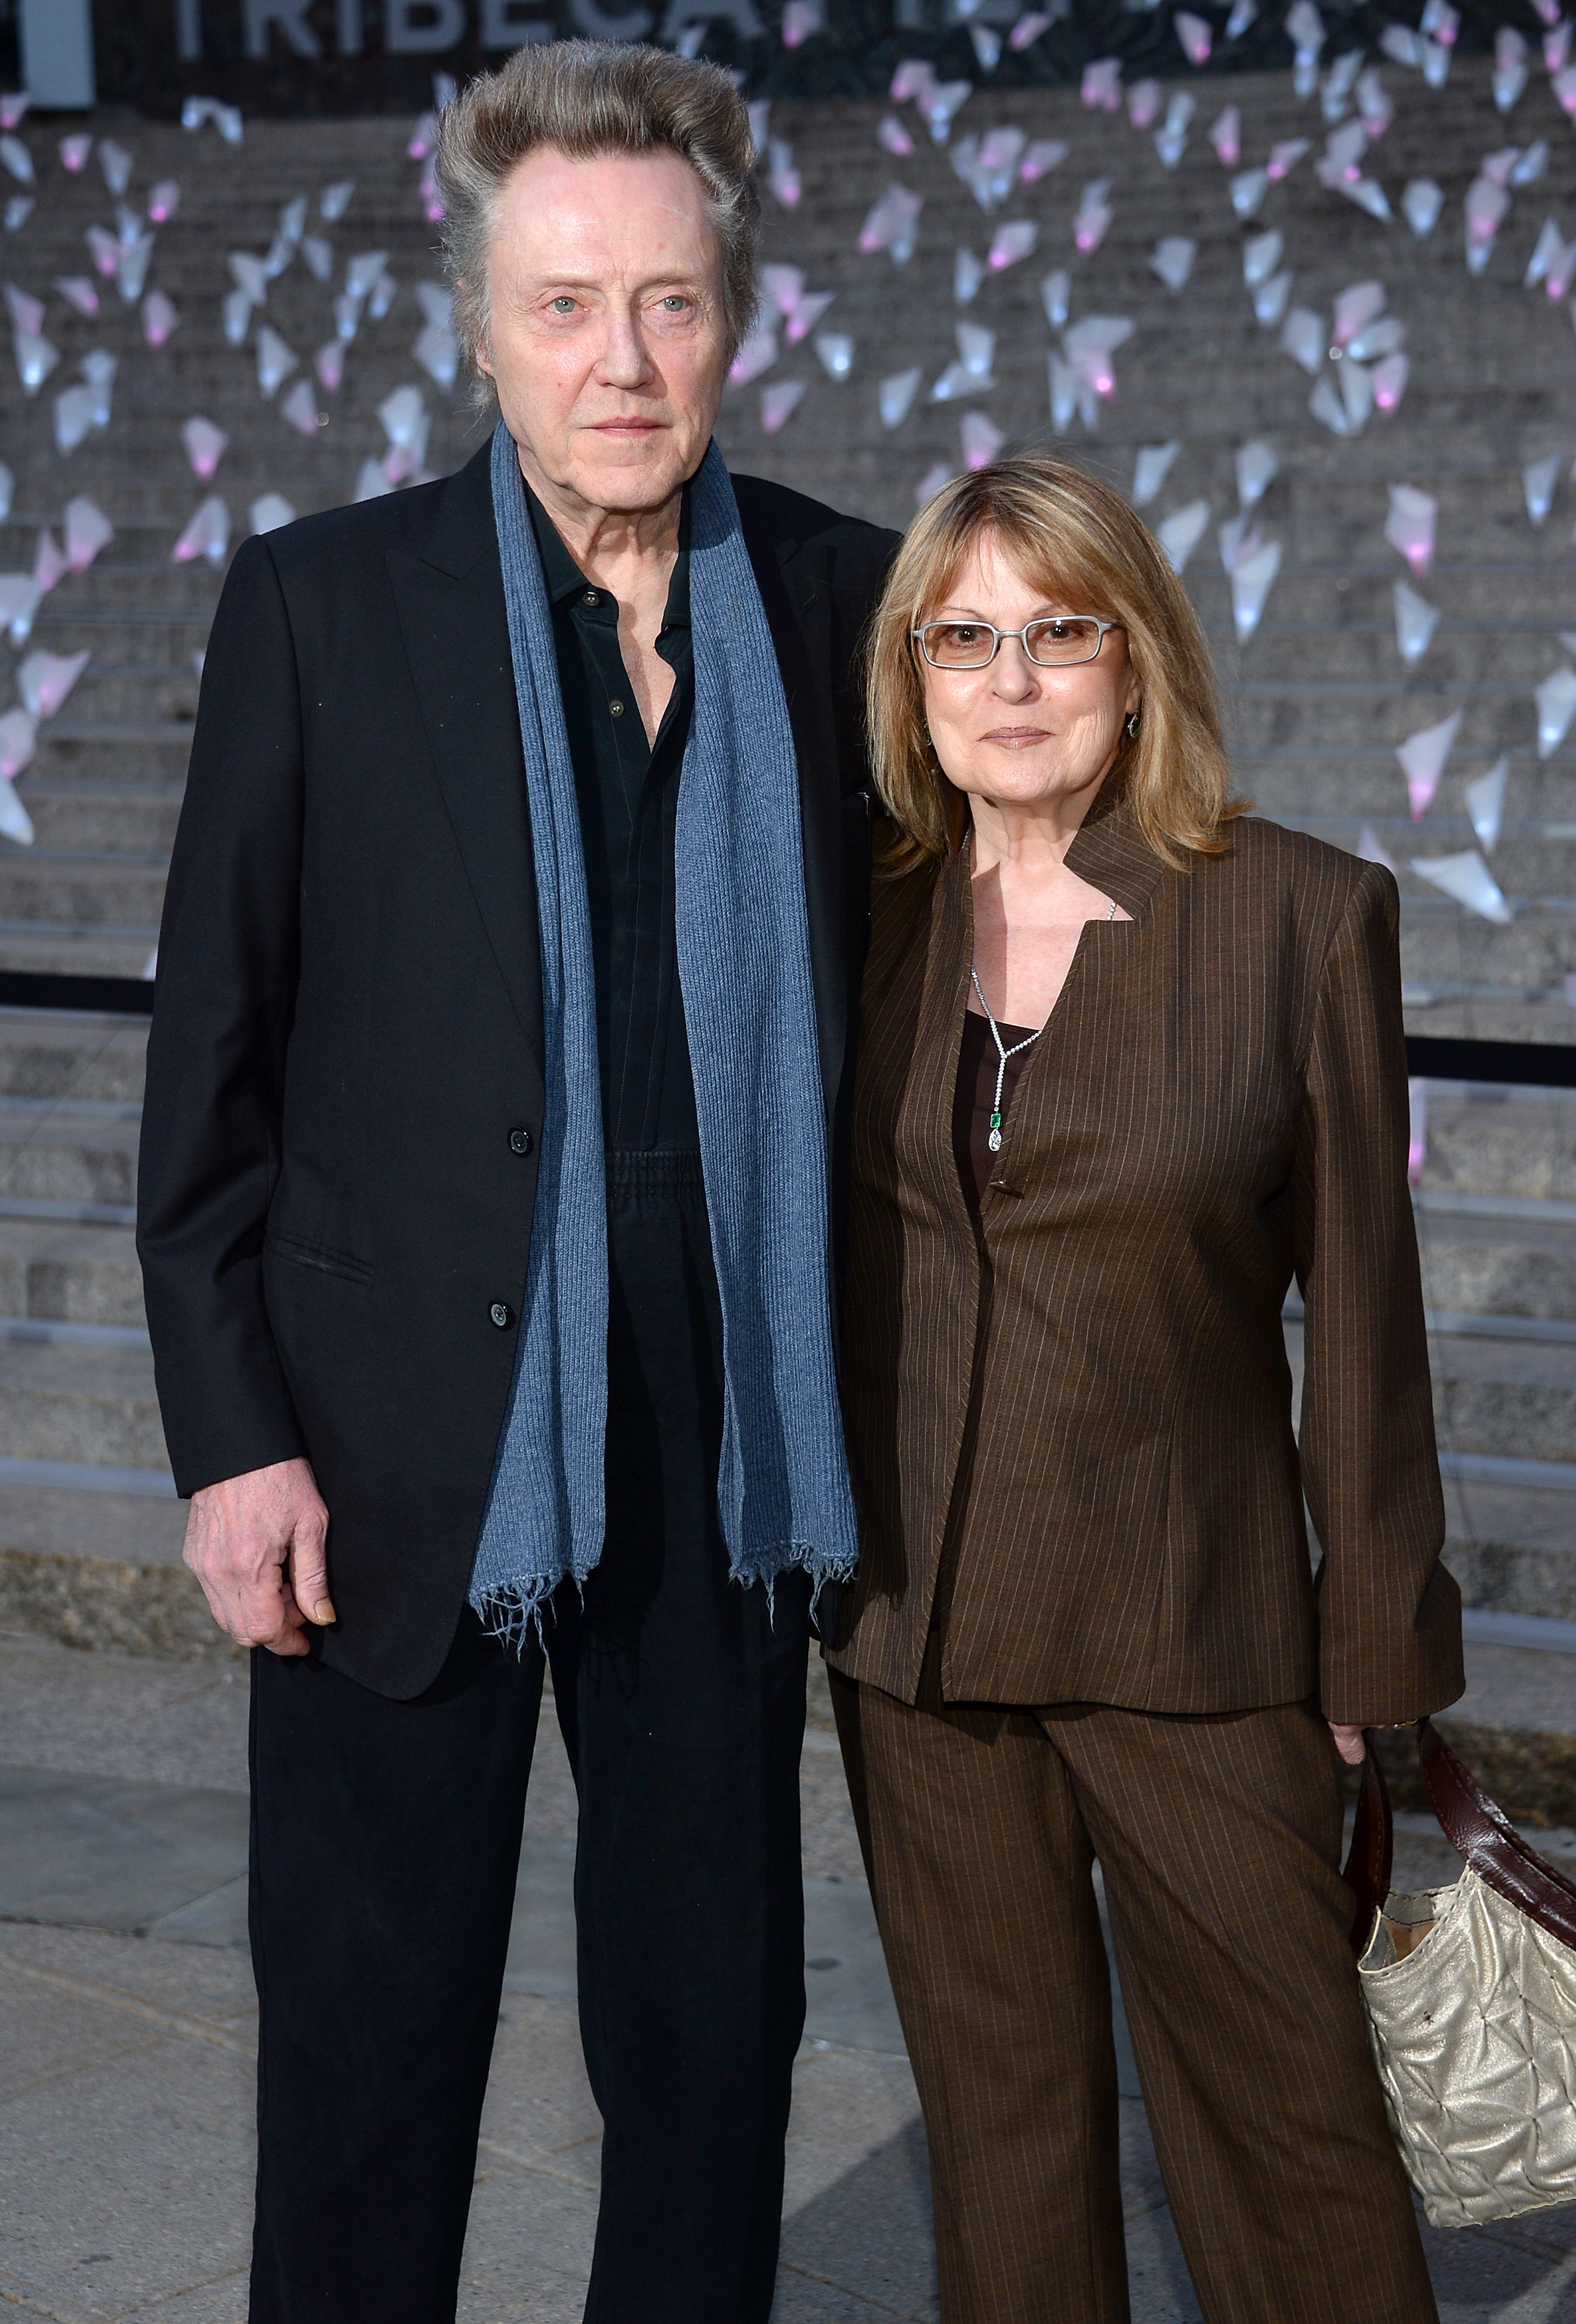 Christopher Walken attended the Vanity Fair party with his wife, Georgianne W